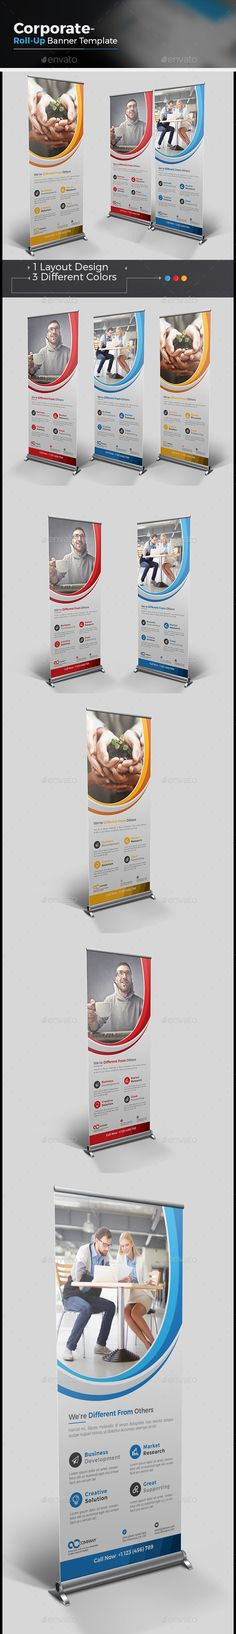 Buy Business Roll-up Banner by CRISTAL_P on GraphicRiver. Corporate Roll-up Banner is very easy to use and change text,color,size,look and everything because i made it on ill. Graphic Design Templates, Print Templates, Banner Vector, Banner Template, Letterhead Template, Brochure Template, Signage Design, Banner Design, Rollup Design